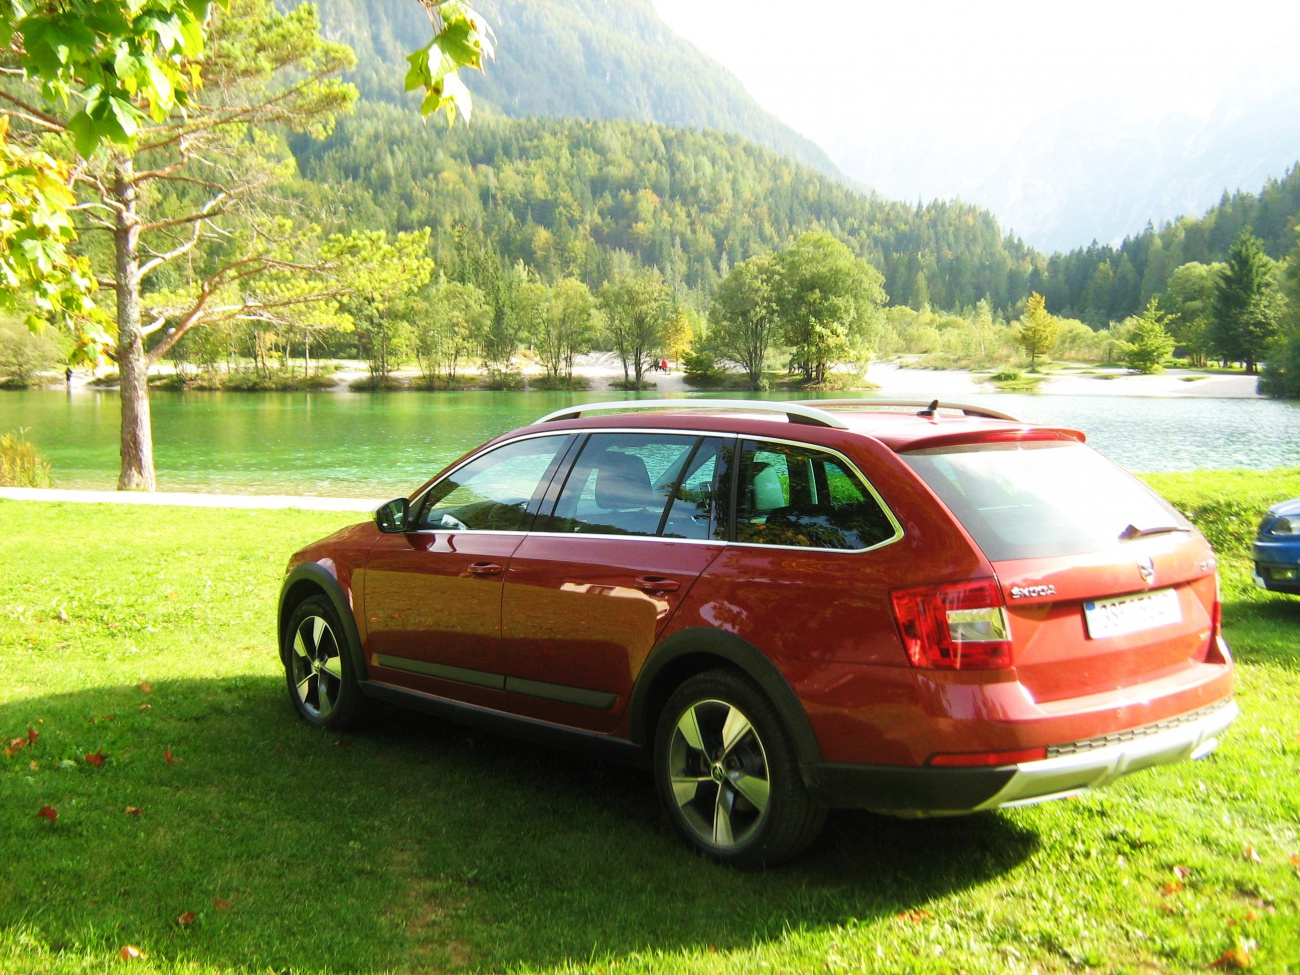 essai skoda octavia scout la roots bourgeoise tch que blog automobile. Black Bedroom Furniture Sets. Home Design Ideas